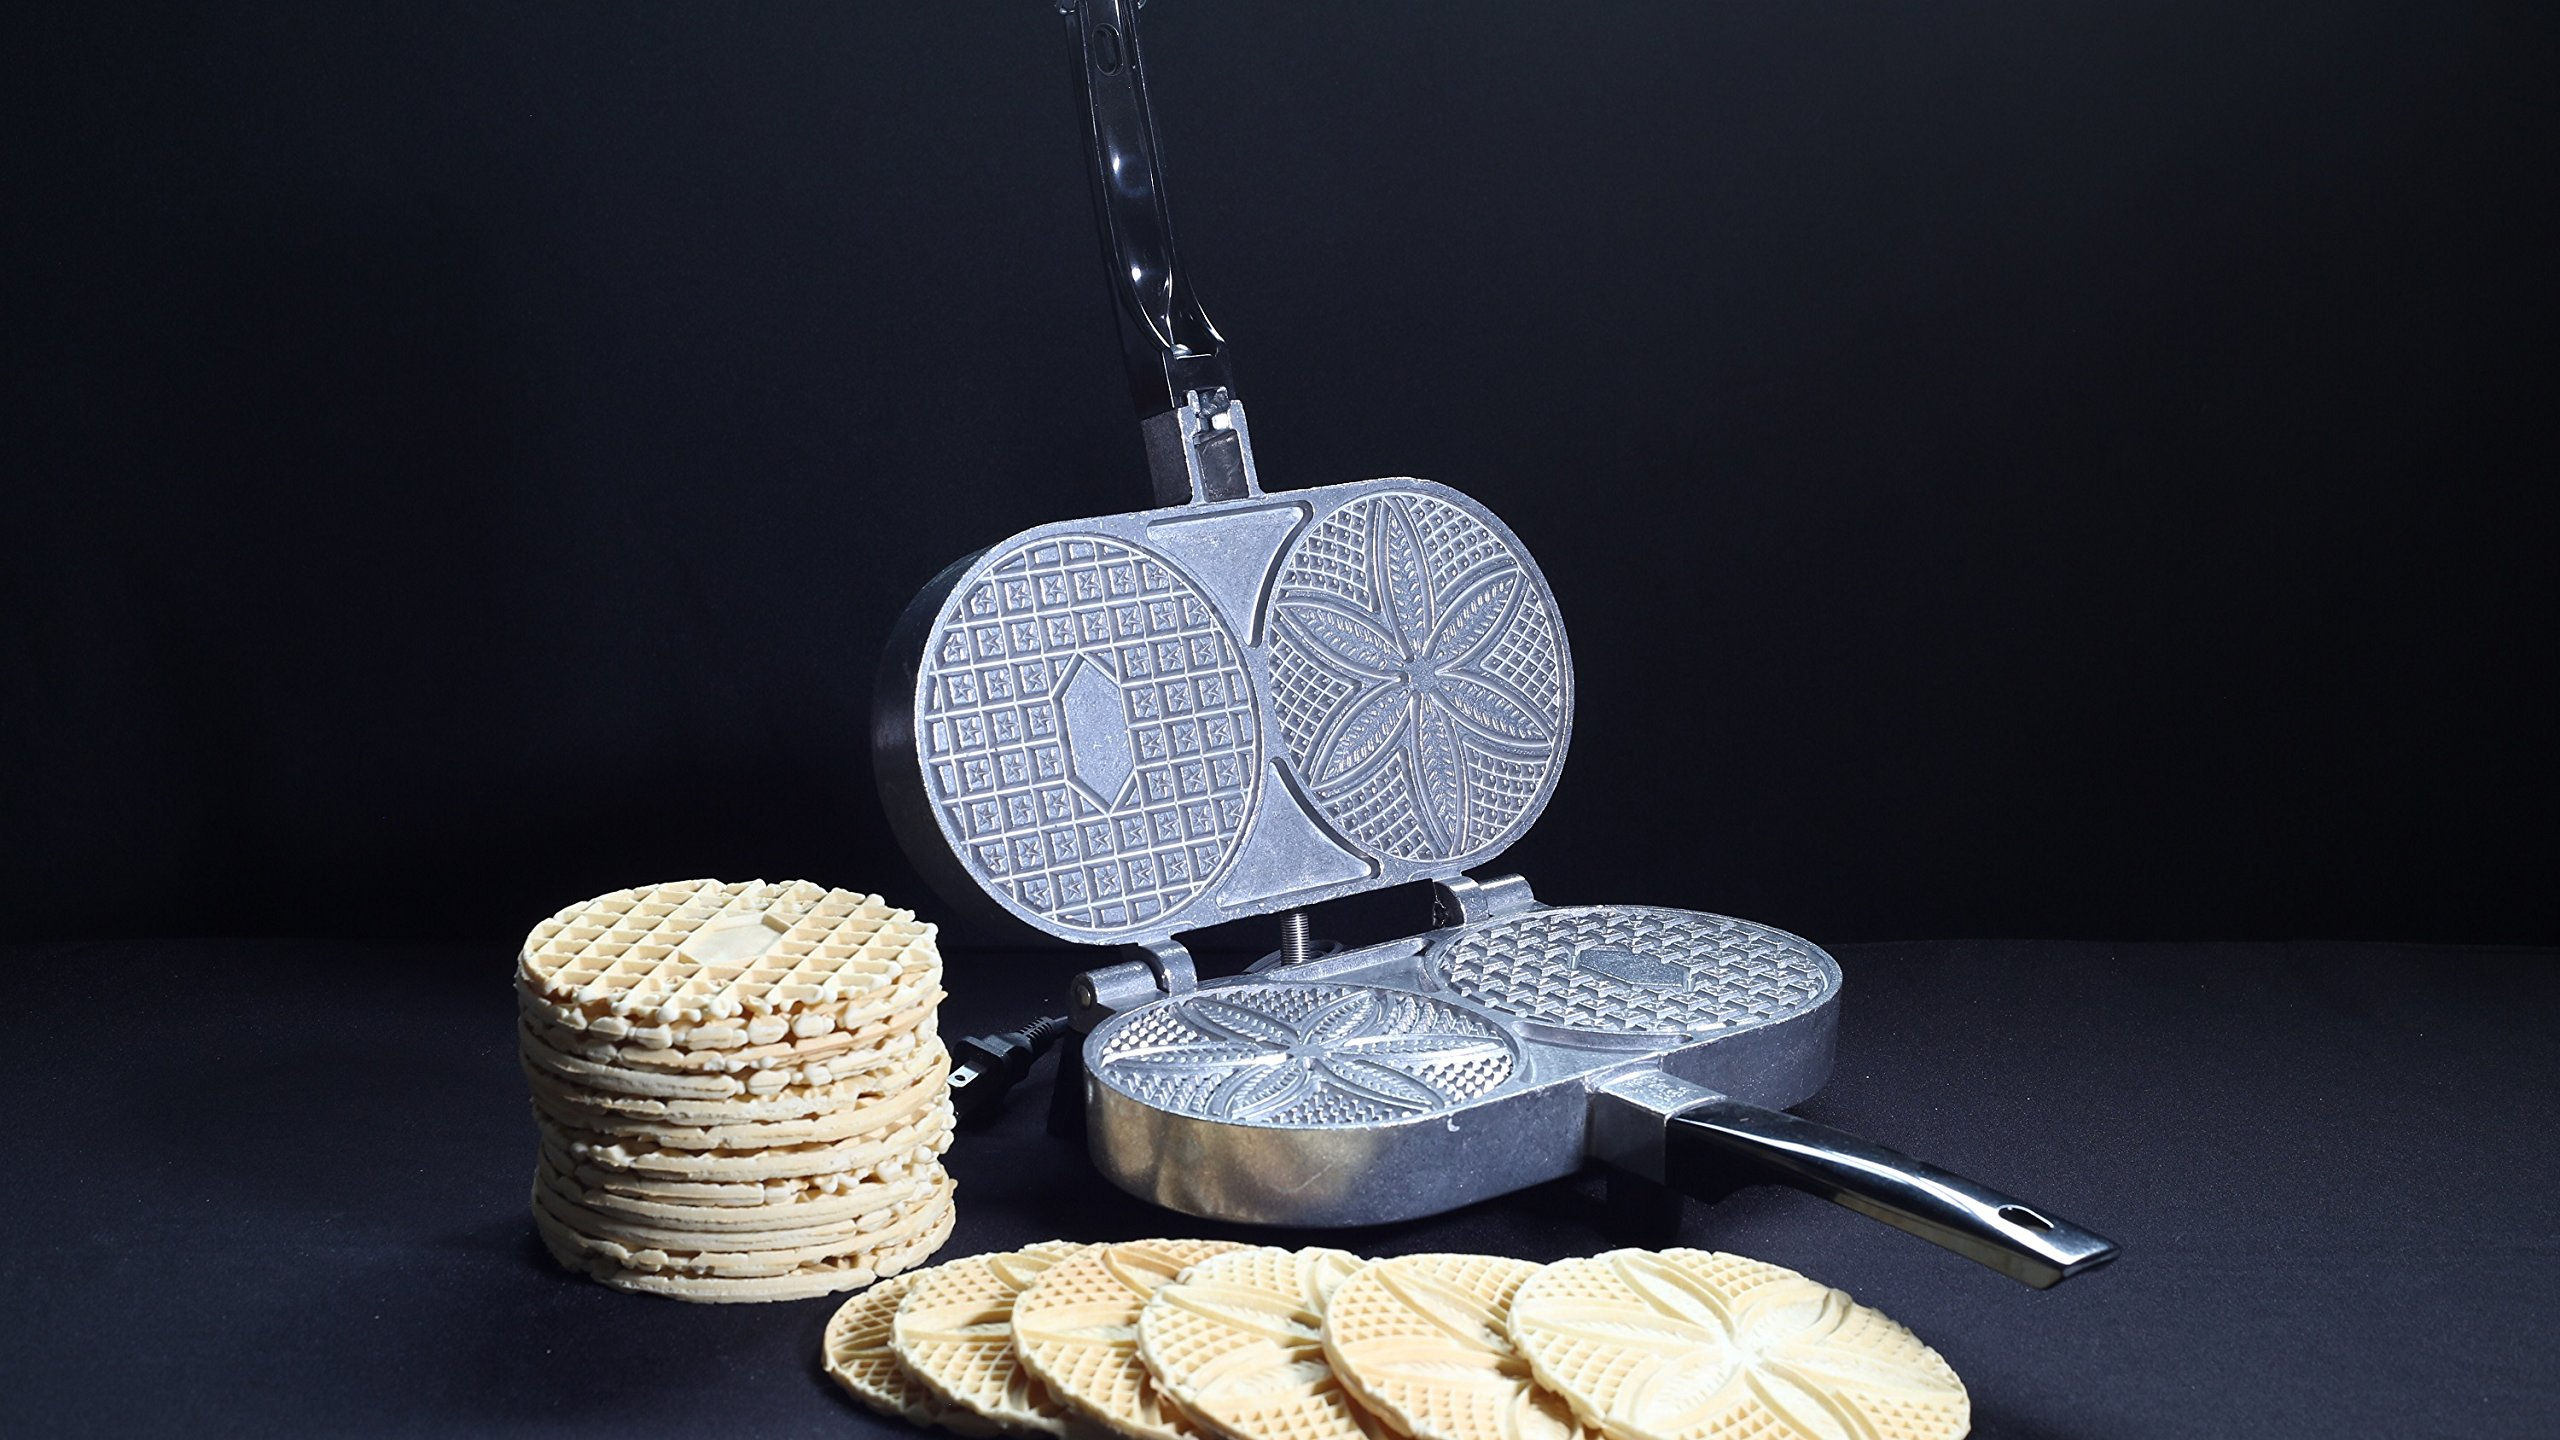 Palmer Pizzelle Maker - Made in USA, Garden, Lawn, Maintenance by Garden-Outdoor